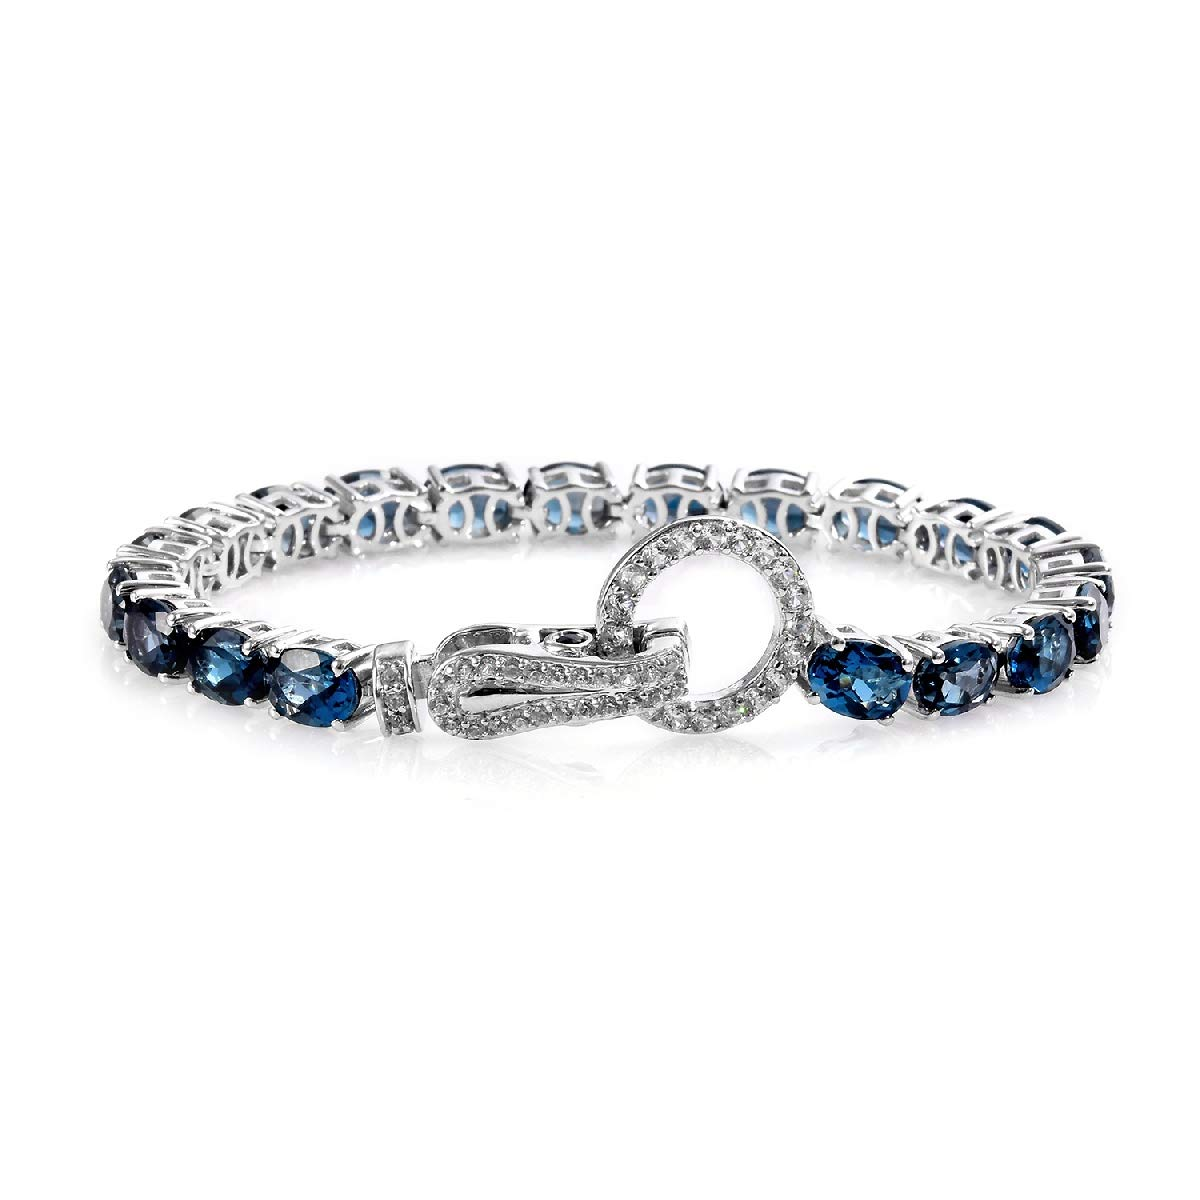 Line Tennis Bracelet 925 Sterling Silver Platinum Plated Blue Topaz Blue Sapphire Jewelry for Women Size 6.5'' Ct 16.1 by Shop LC Delivering Joy